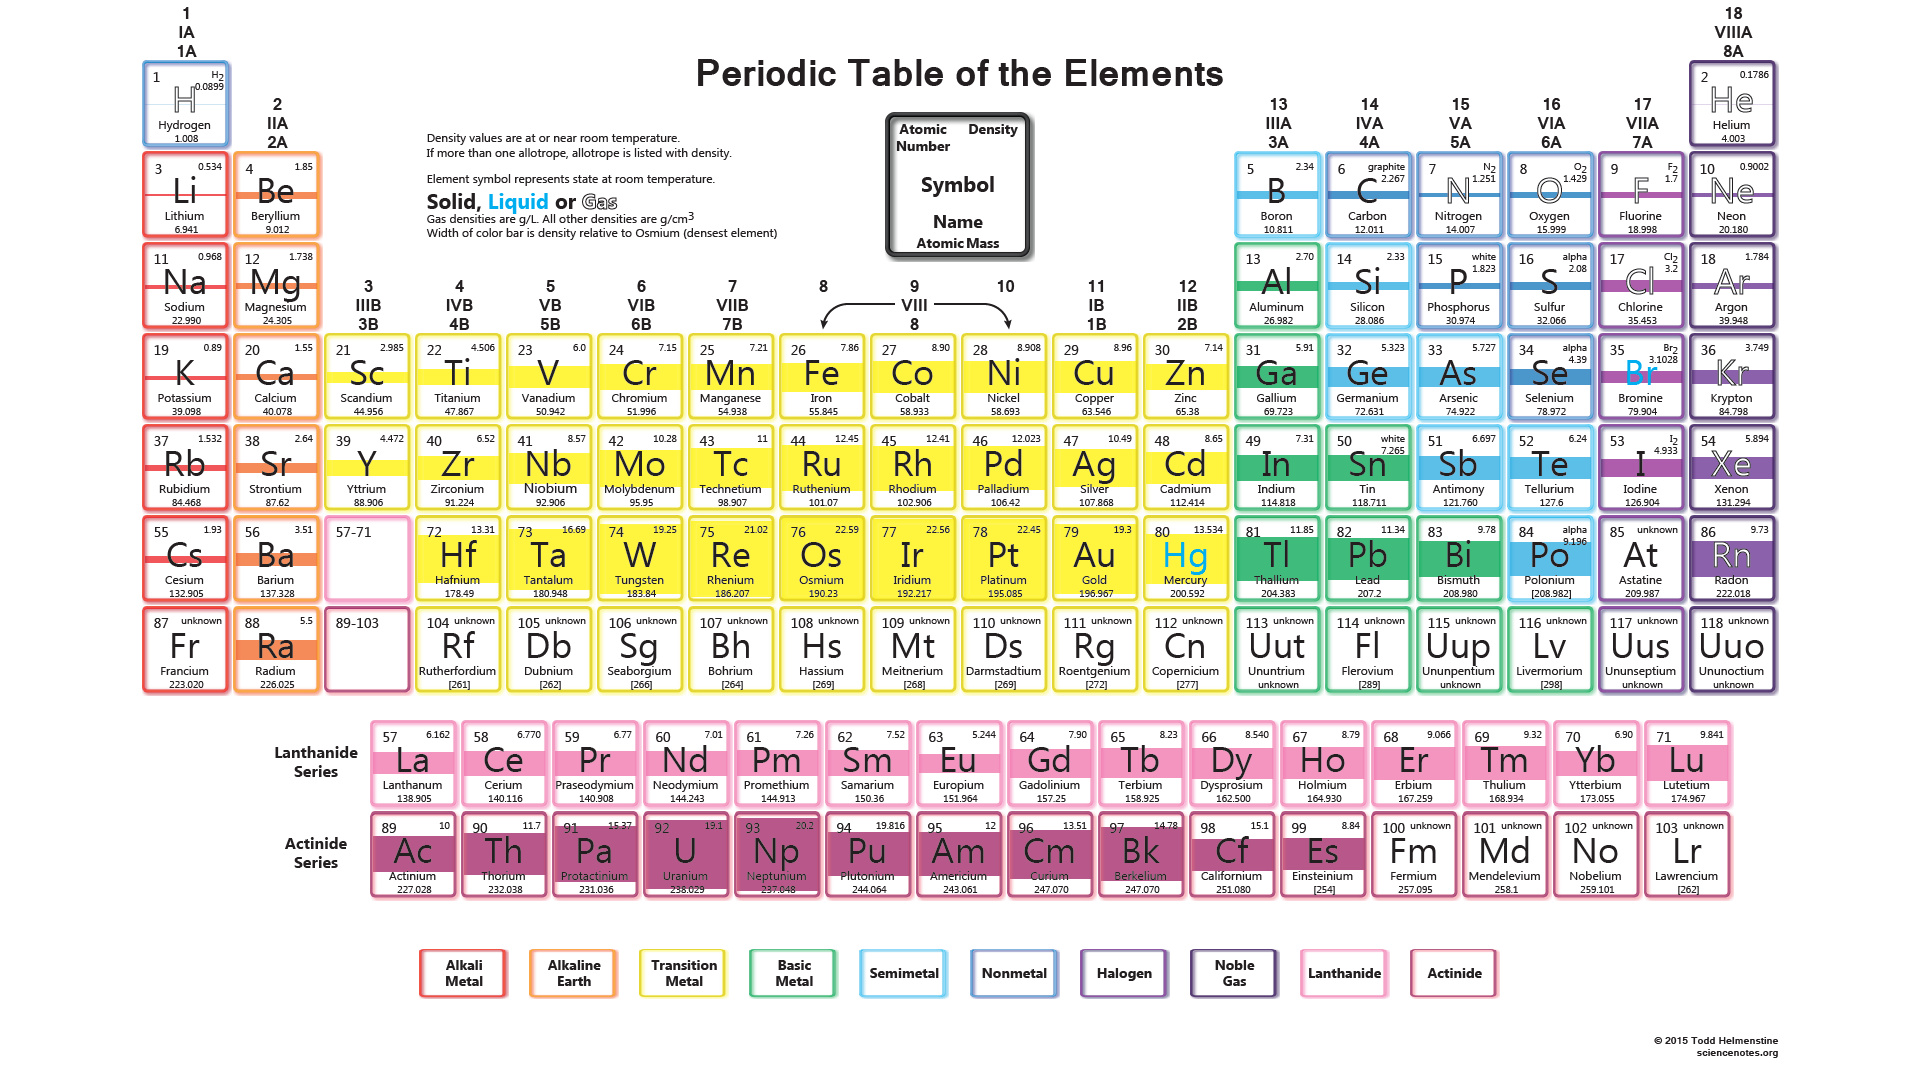 Periodic table wallpaper hd density periodic table wallpaper density each element is represented by its atomic number urtaz